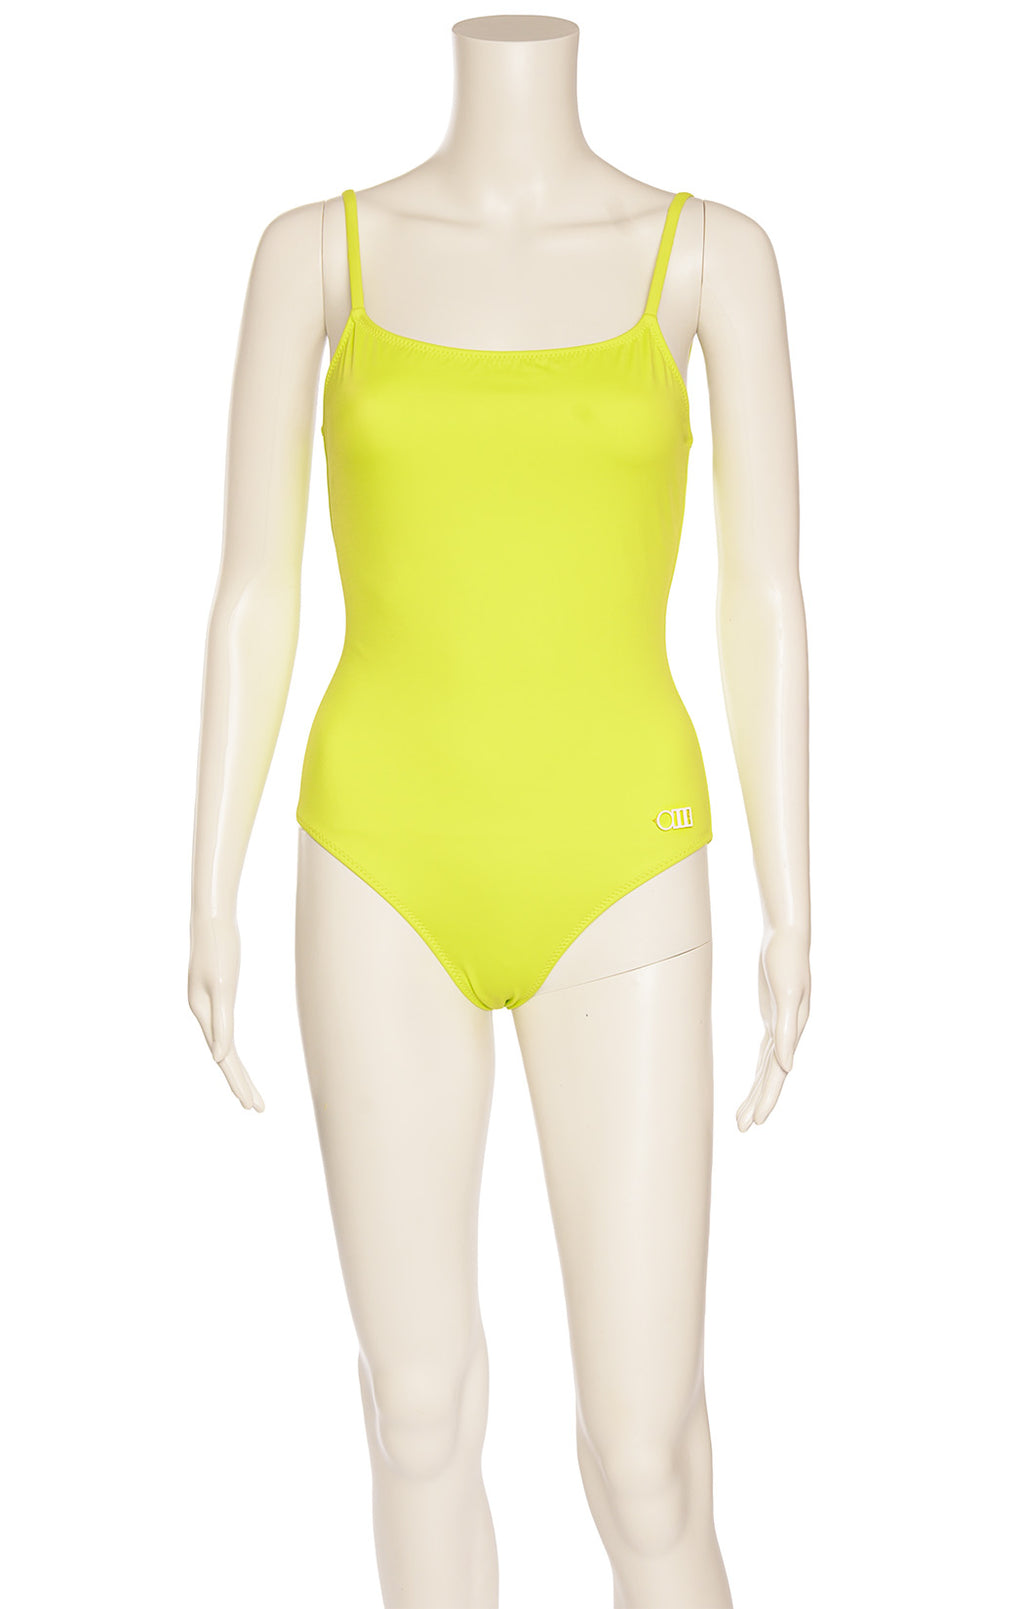 Neon green one piece bathing suit